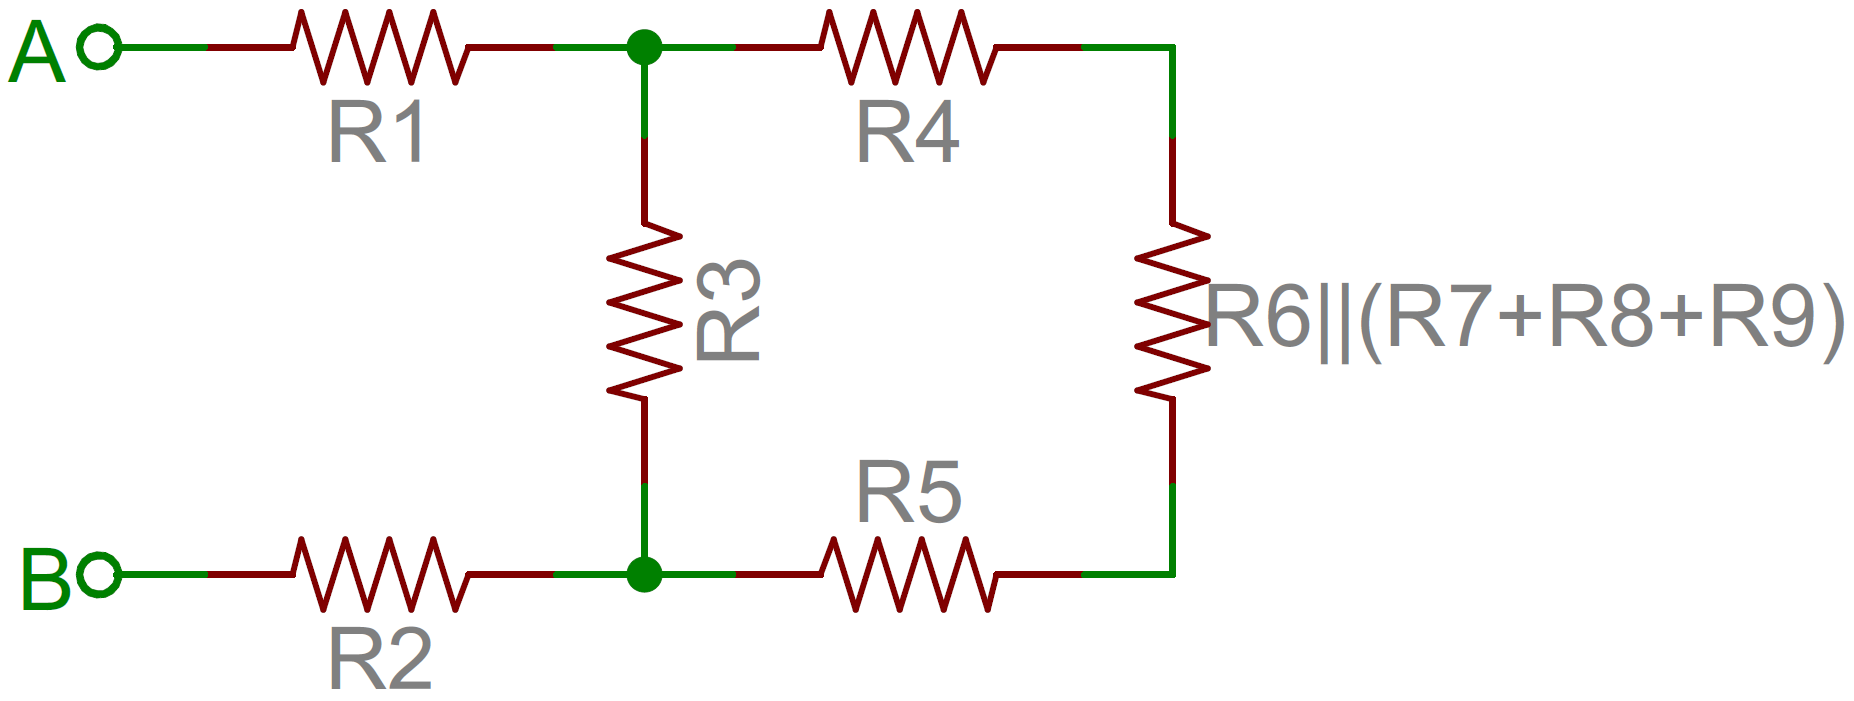 Resistors Input Interfacing Circuits Connect To The Real World Resistor Network Simplified